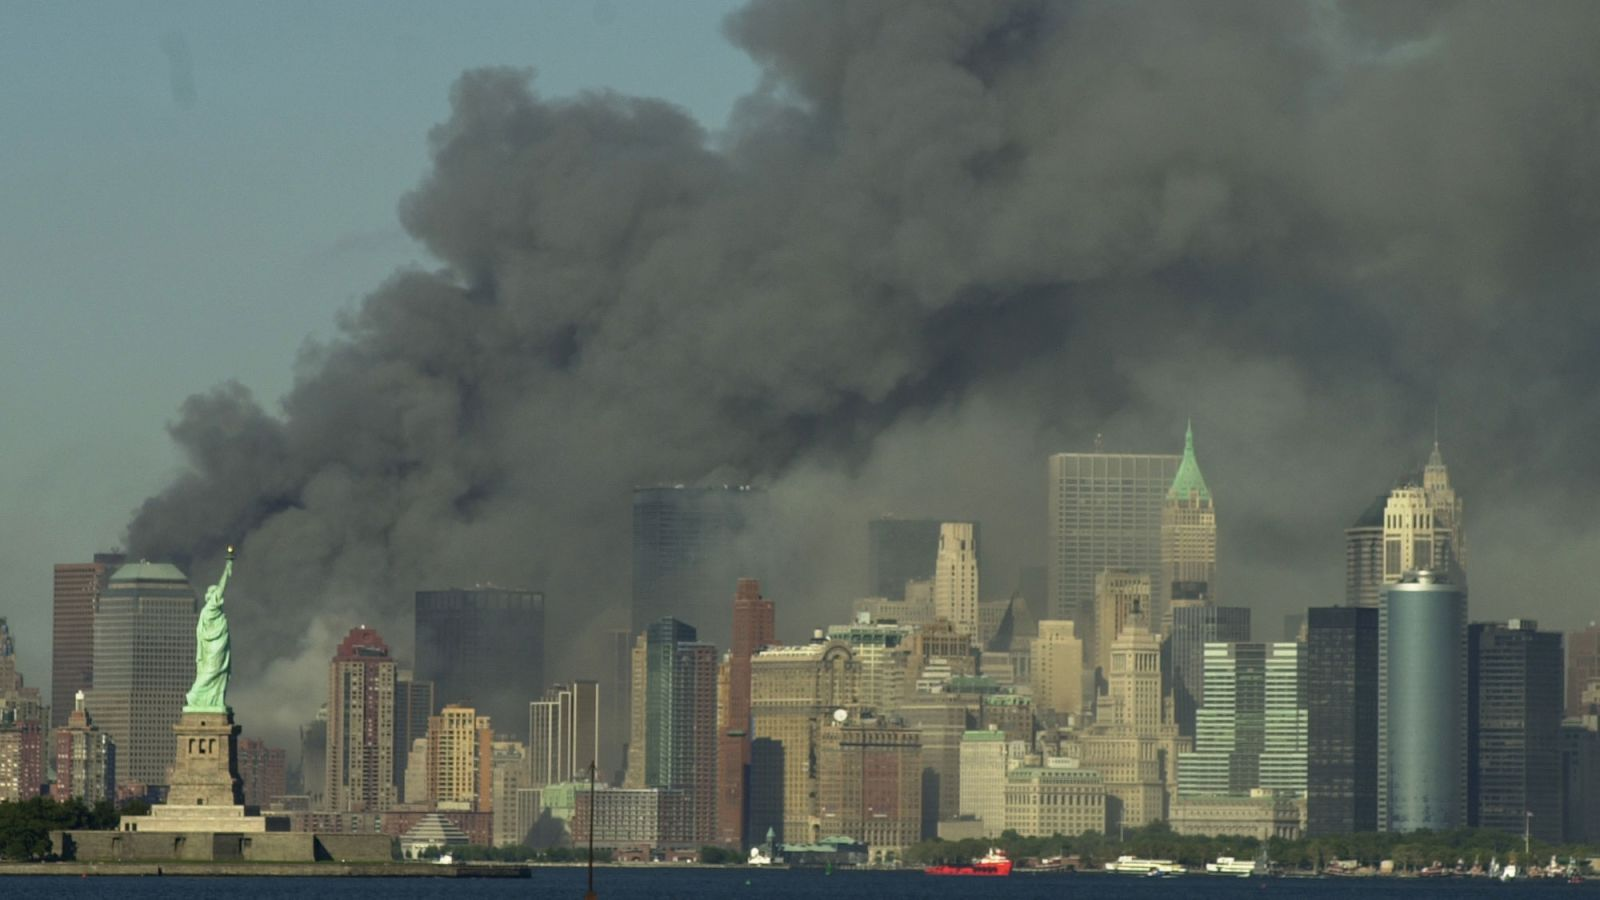 In photos: The September 11 attacks